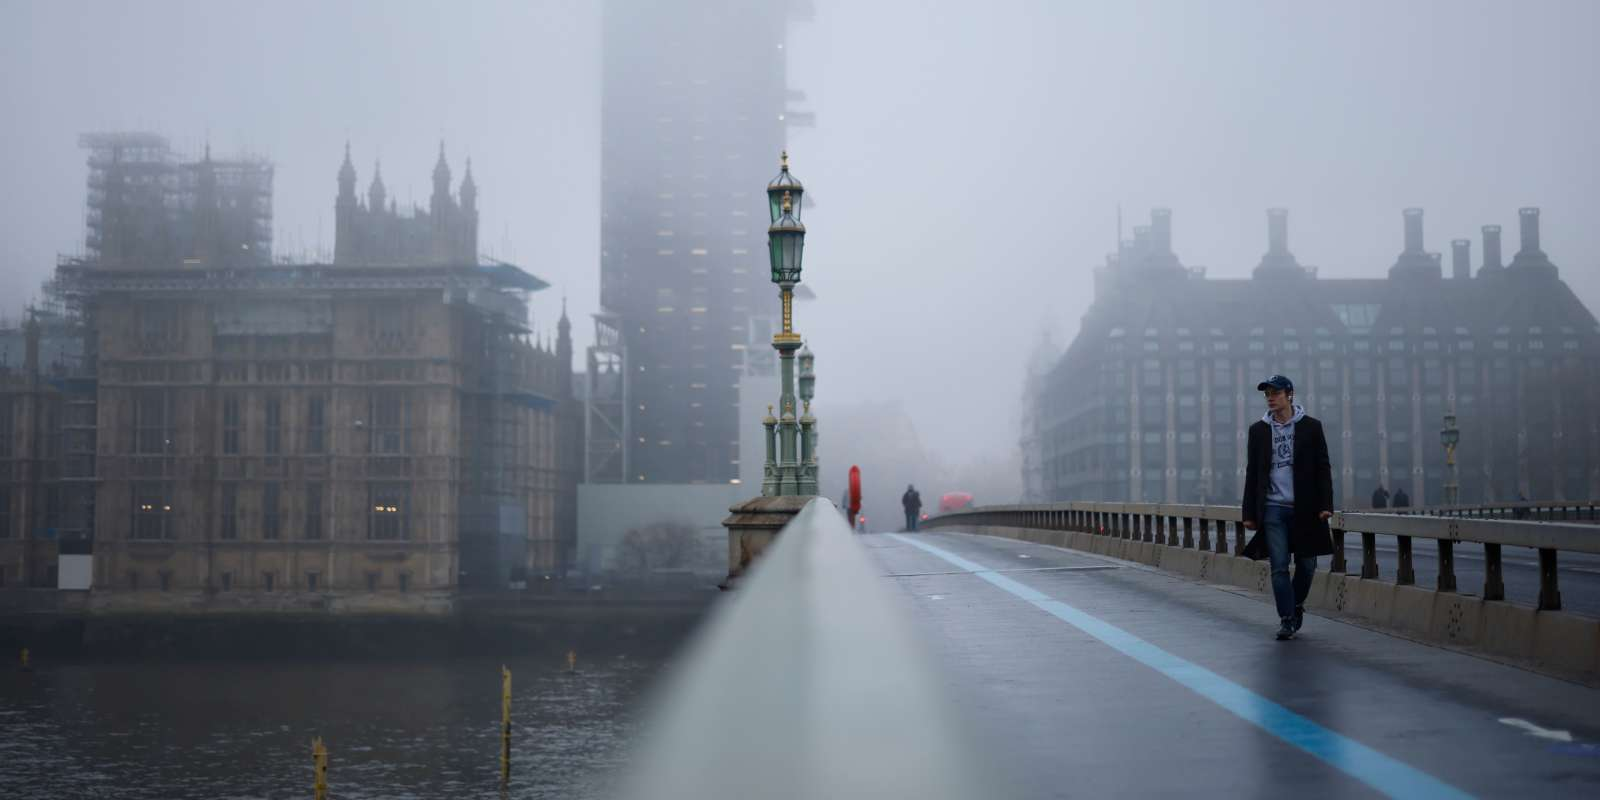 TOPSHOT - Pedestrians cross Westminster Bridge as fog envelopes the Elizabeth Tower, commonly known by the name of the bell,